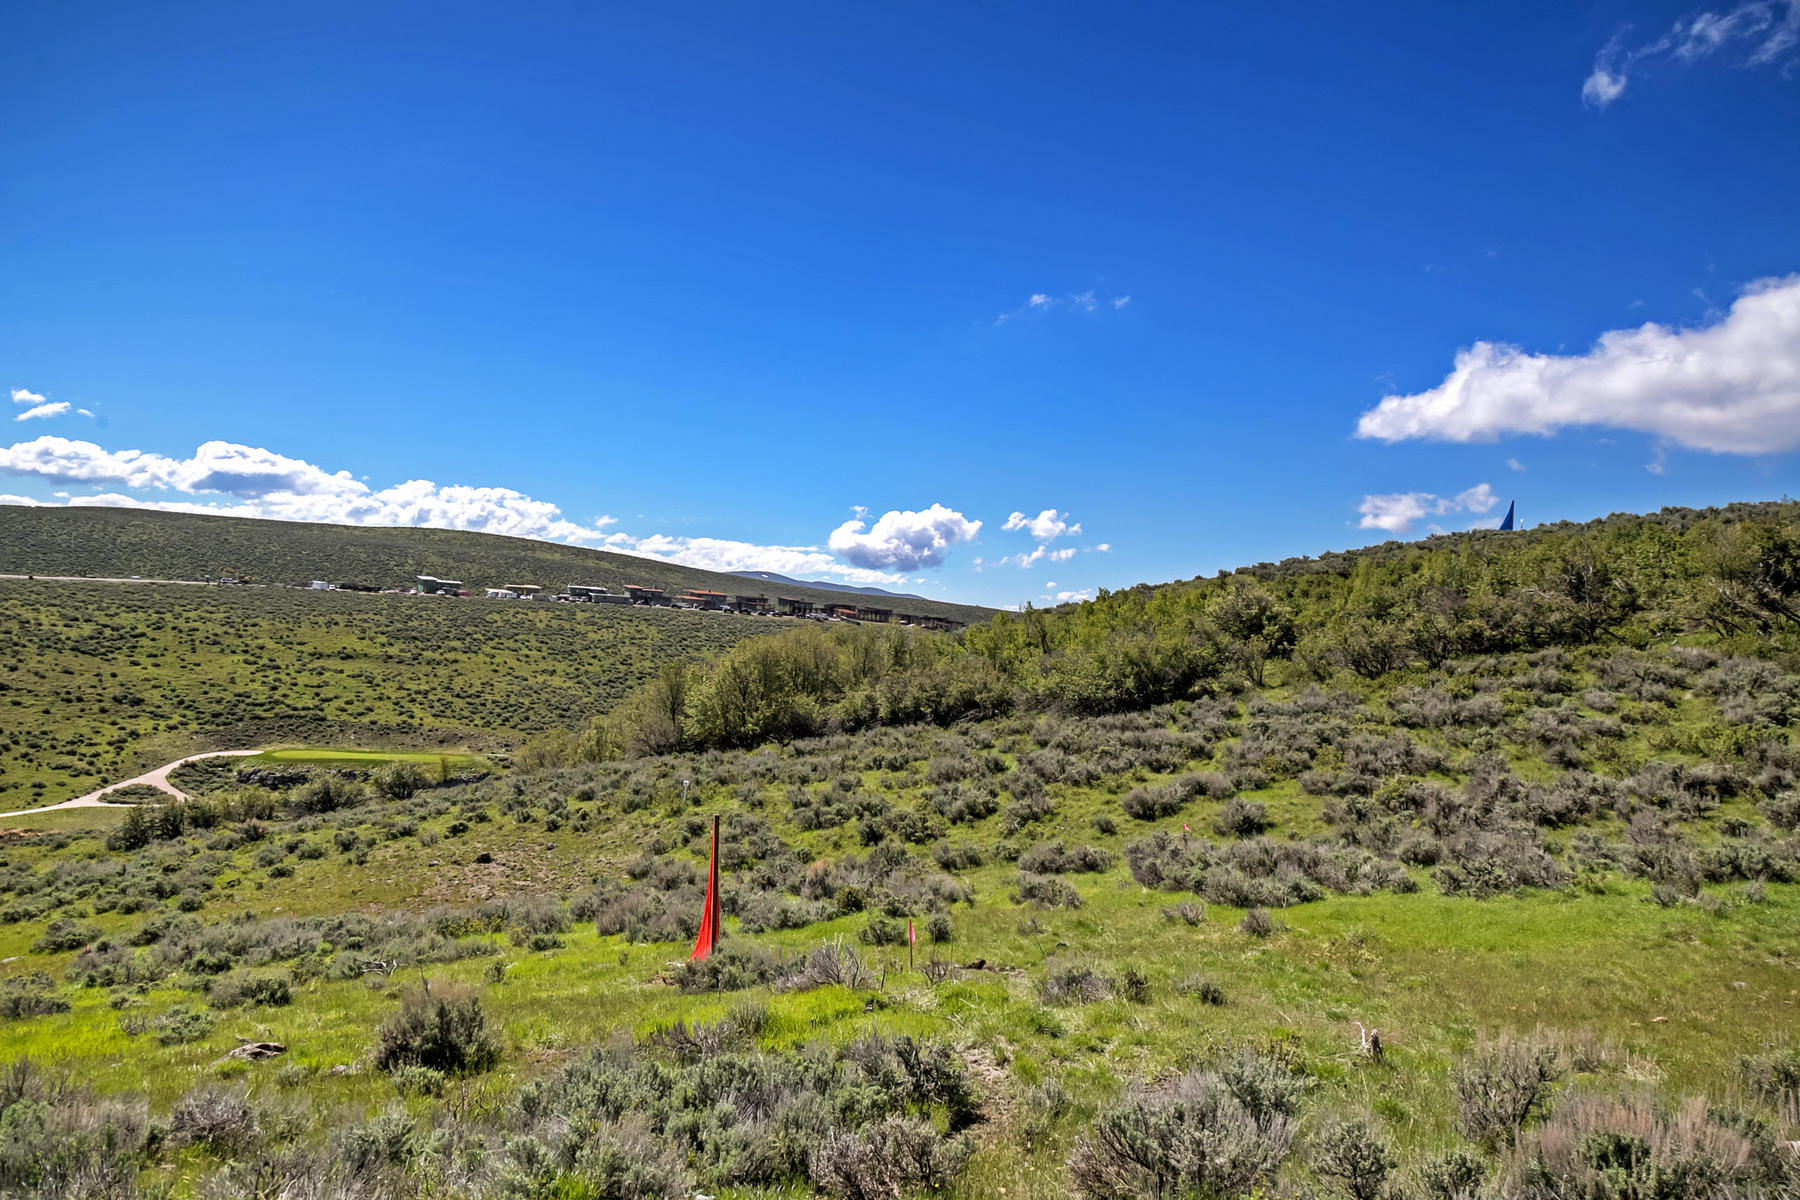 Terreno por un Venta en Stunning Golf and Ski Run Views on The Nicklaus Course 6730 Painted Valley Pass Lot #14 Park City, Utah, 84098 Estados Unidos